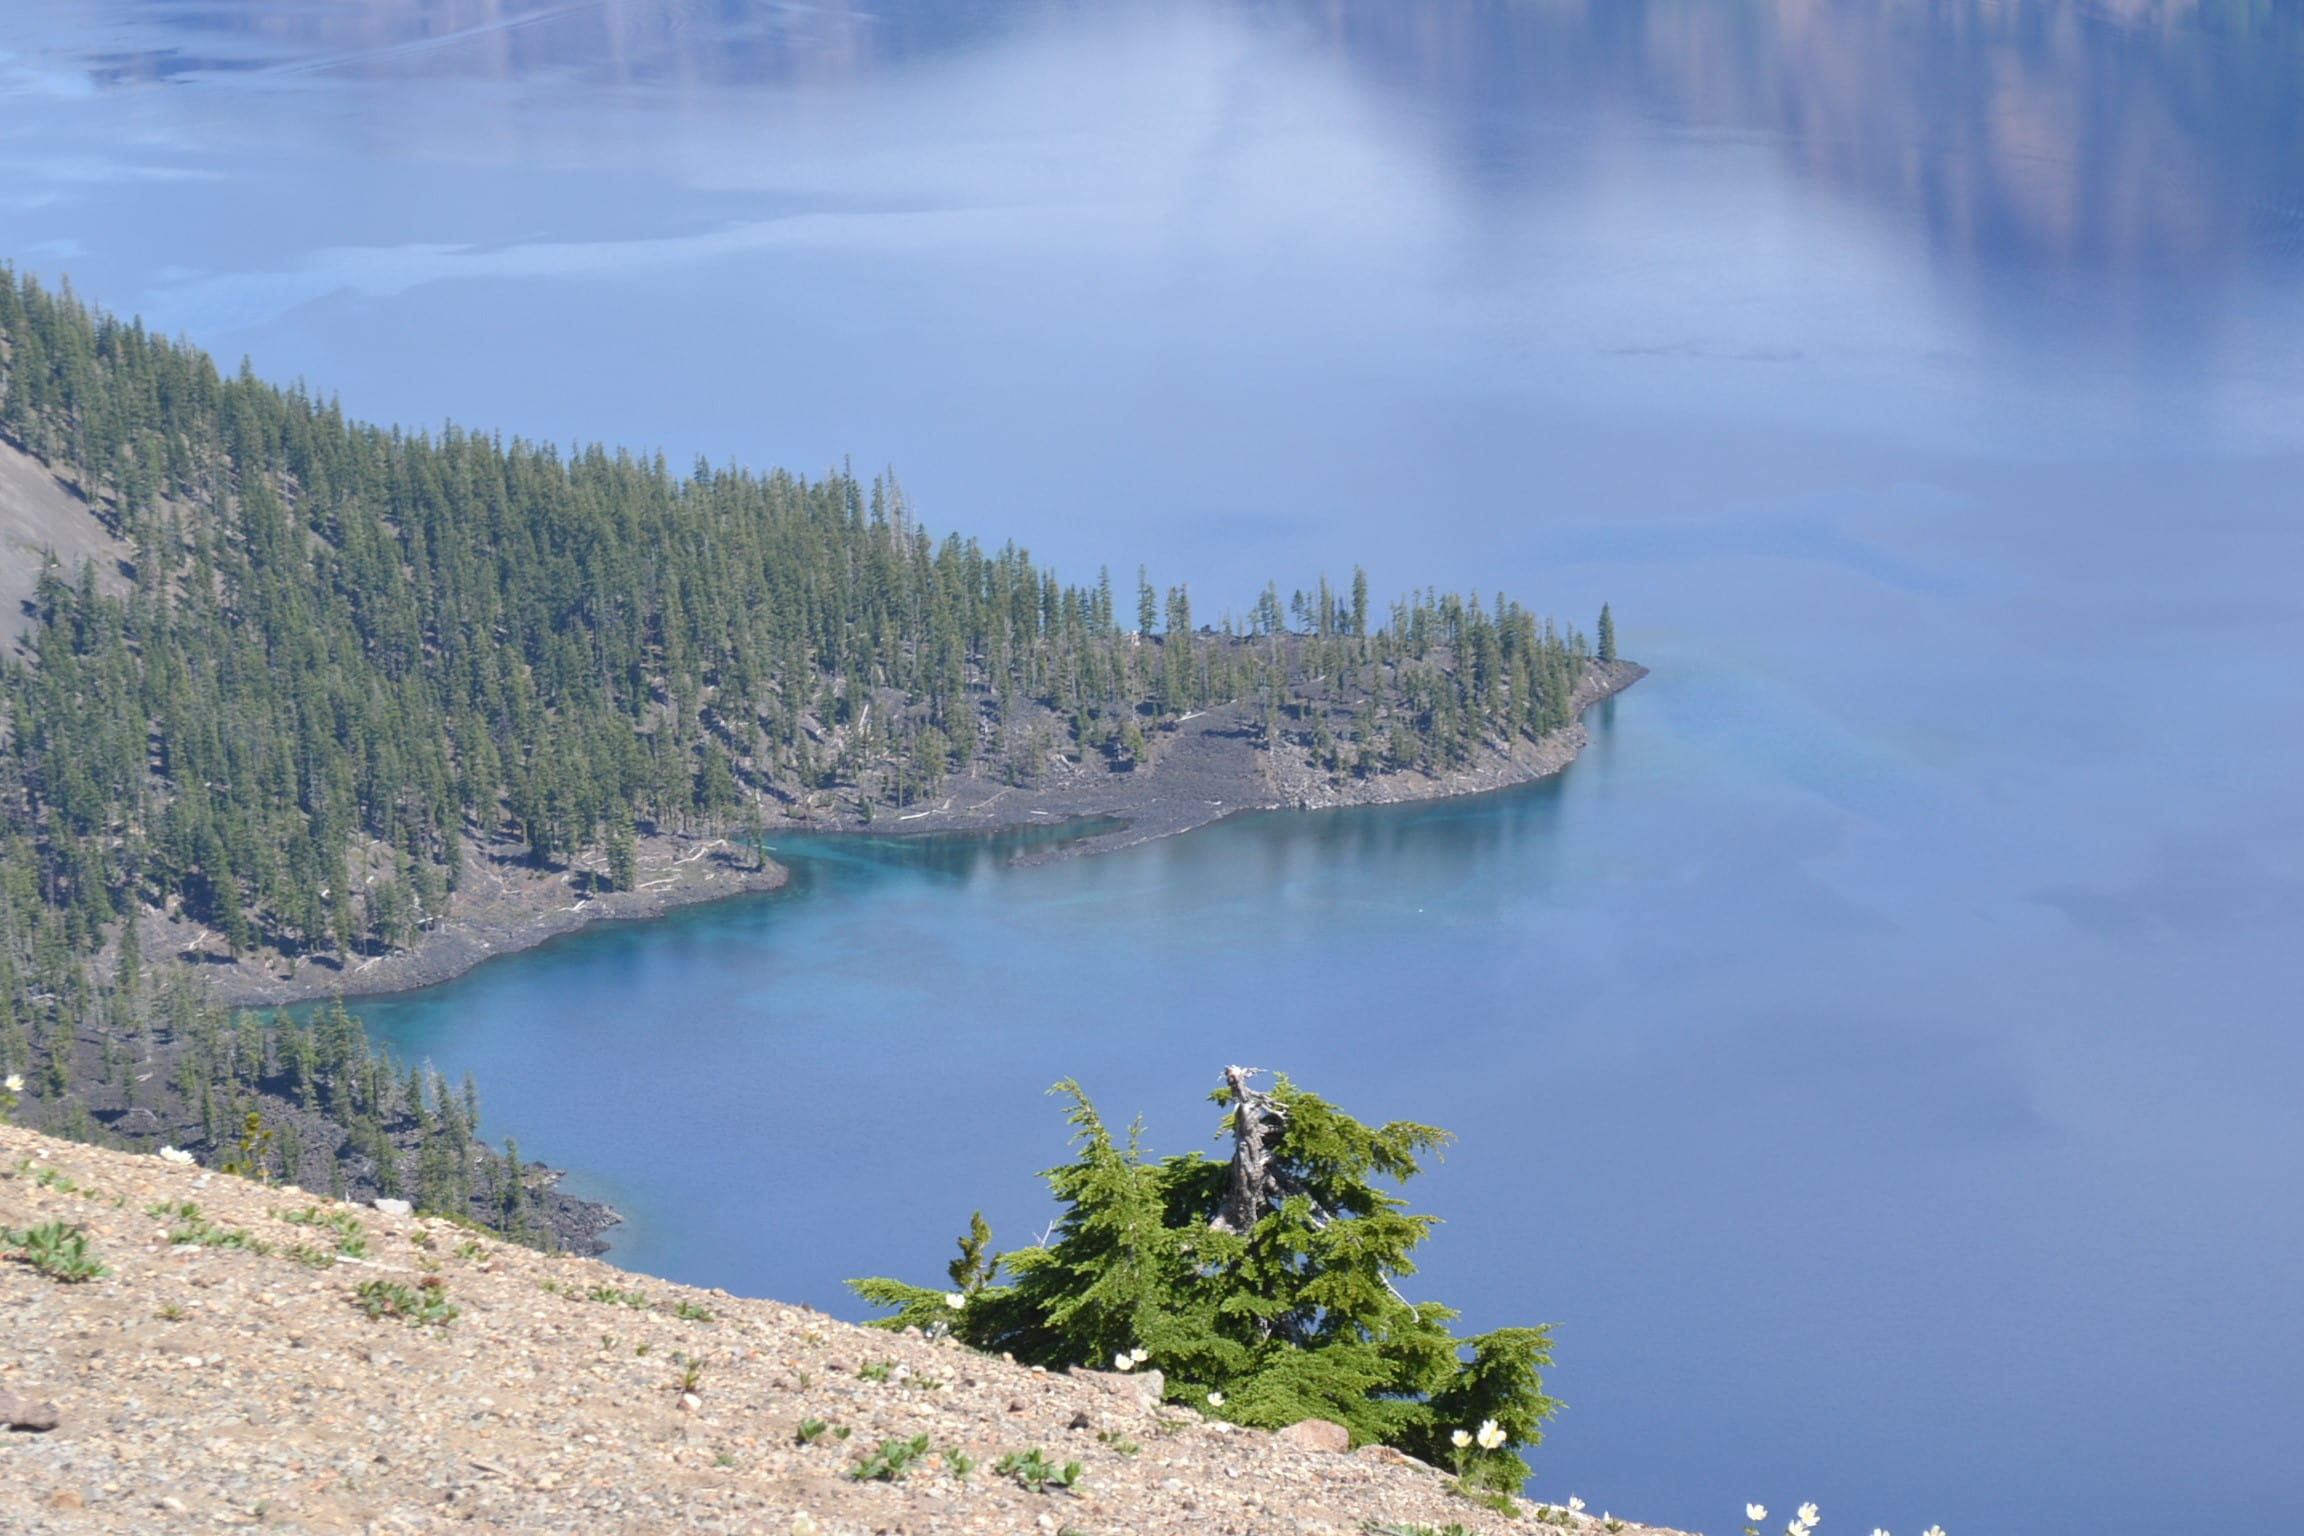 Shoreline view of Crater Lake.